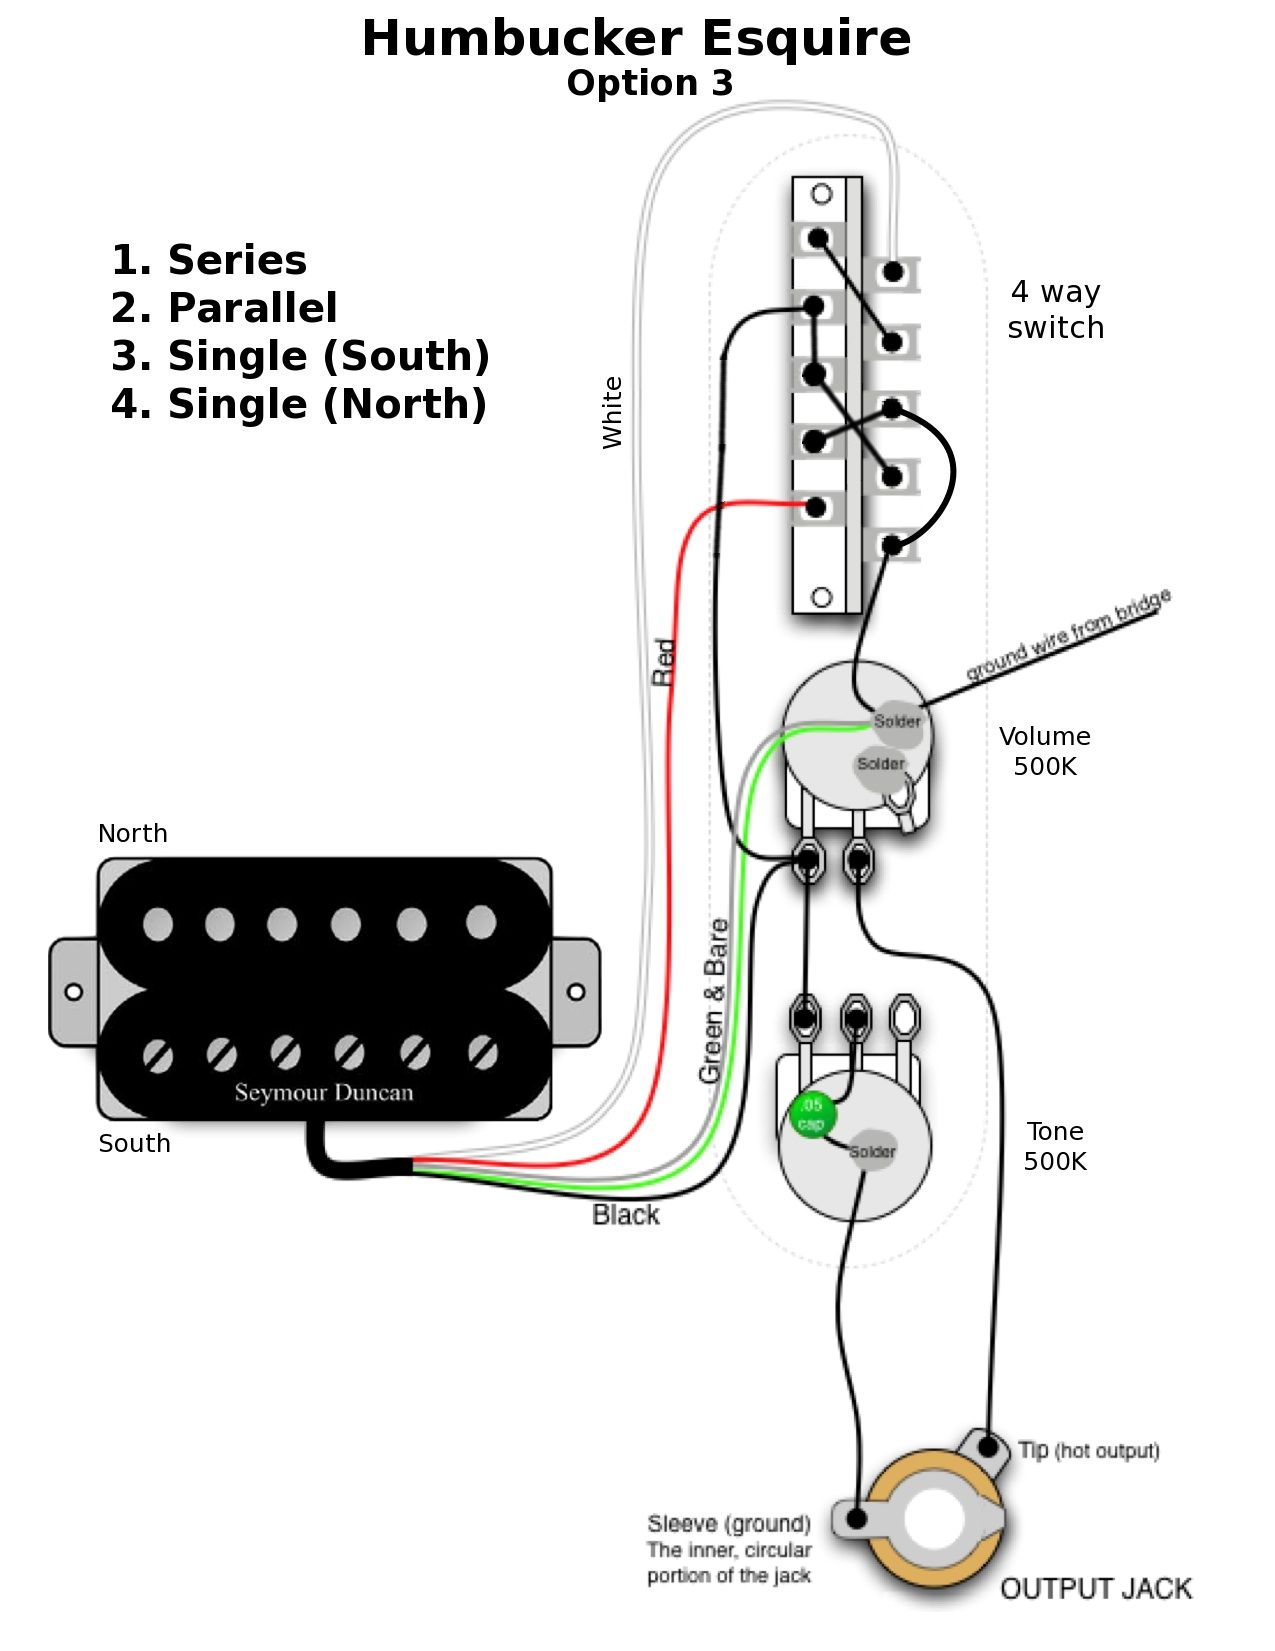 z243s esquire_hb_option_3 guitar wiring diagrams 1 hum 2 single guitar discover your fender esquire wiring diagram at creativeand.co